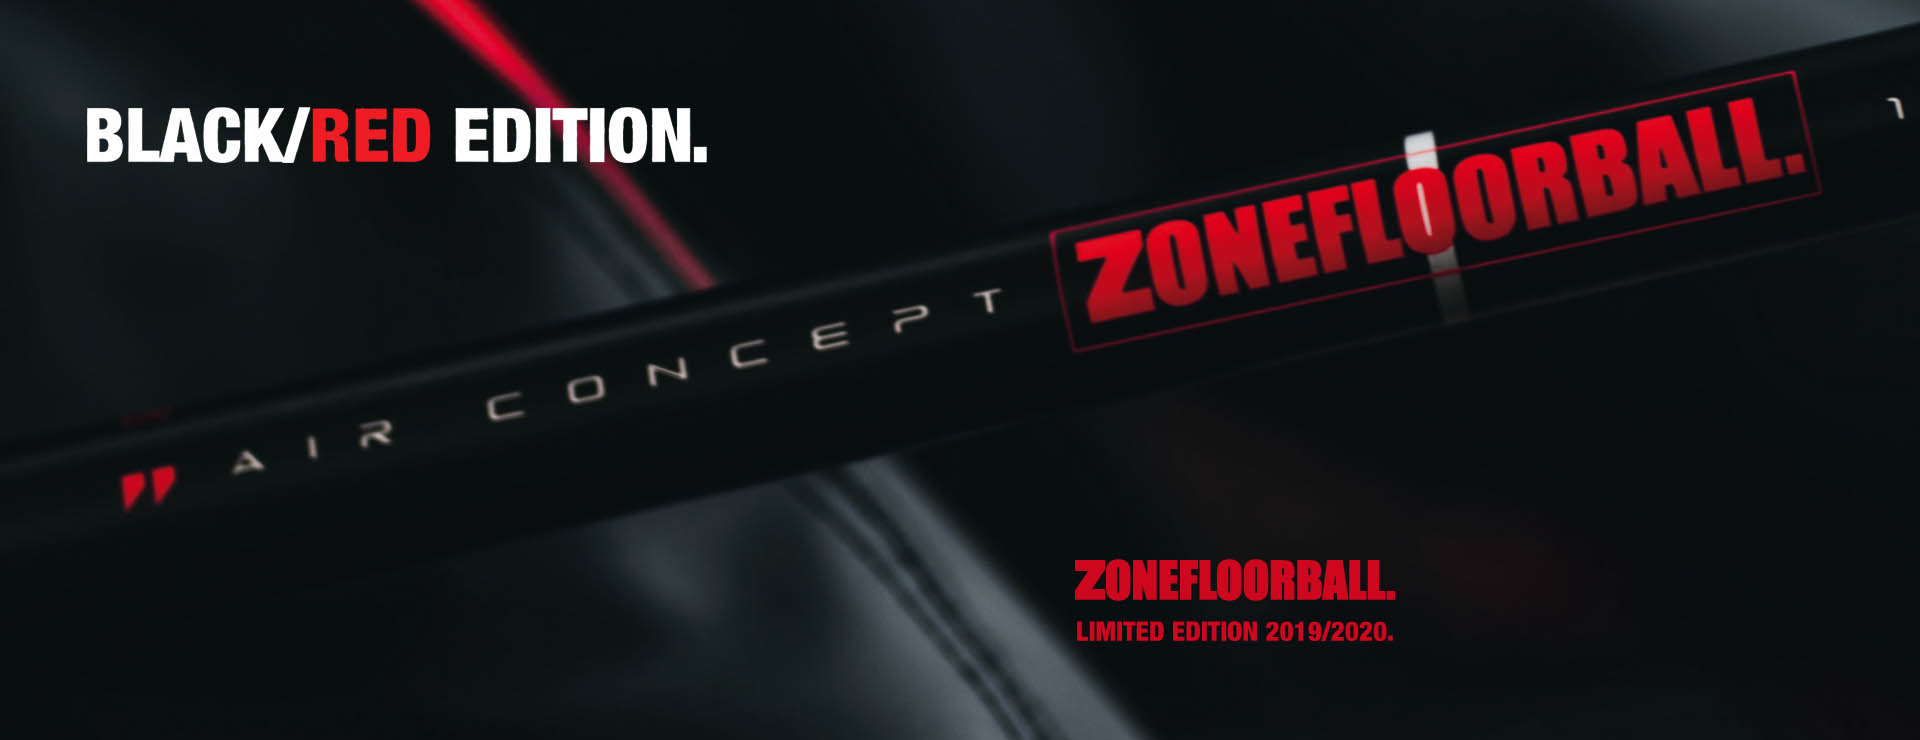 Zone Maker Limited